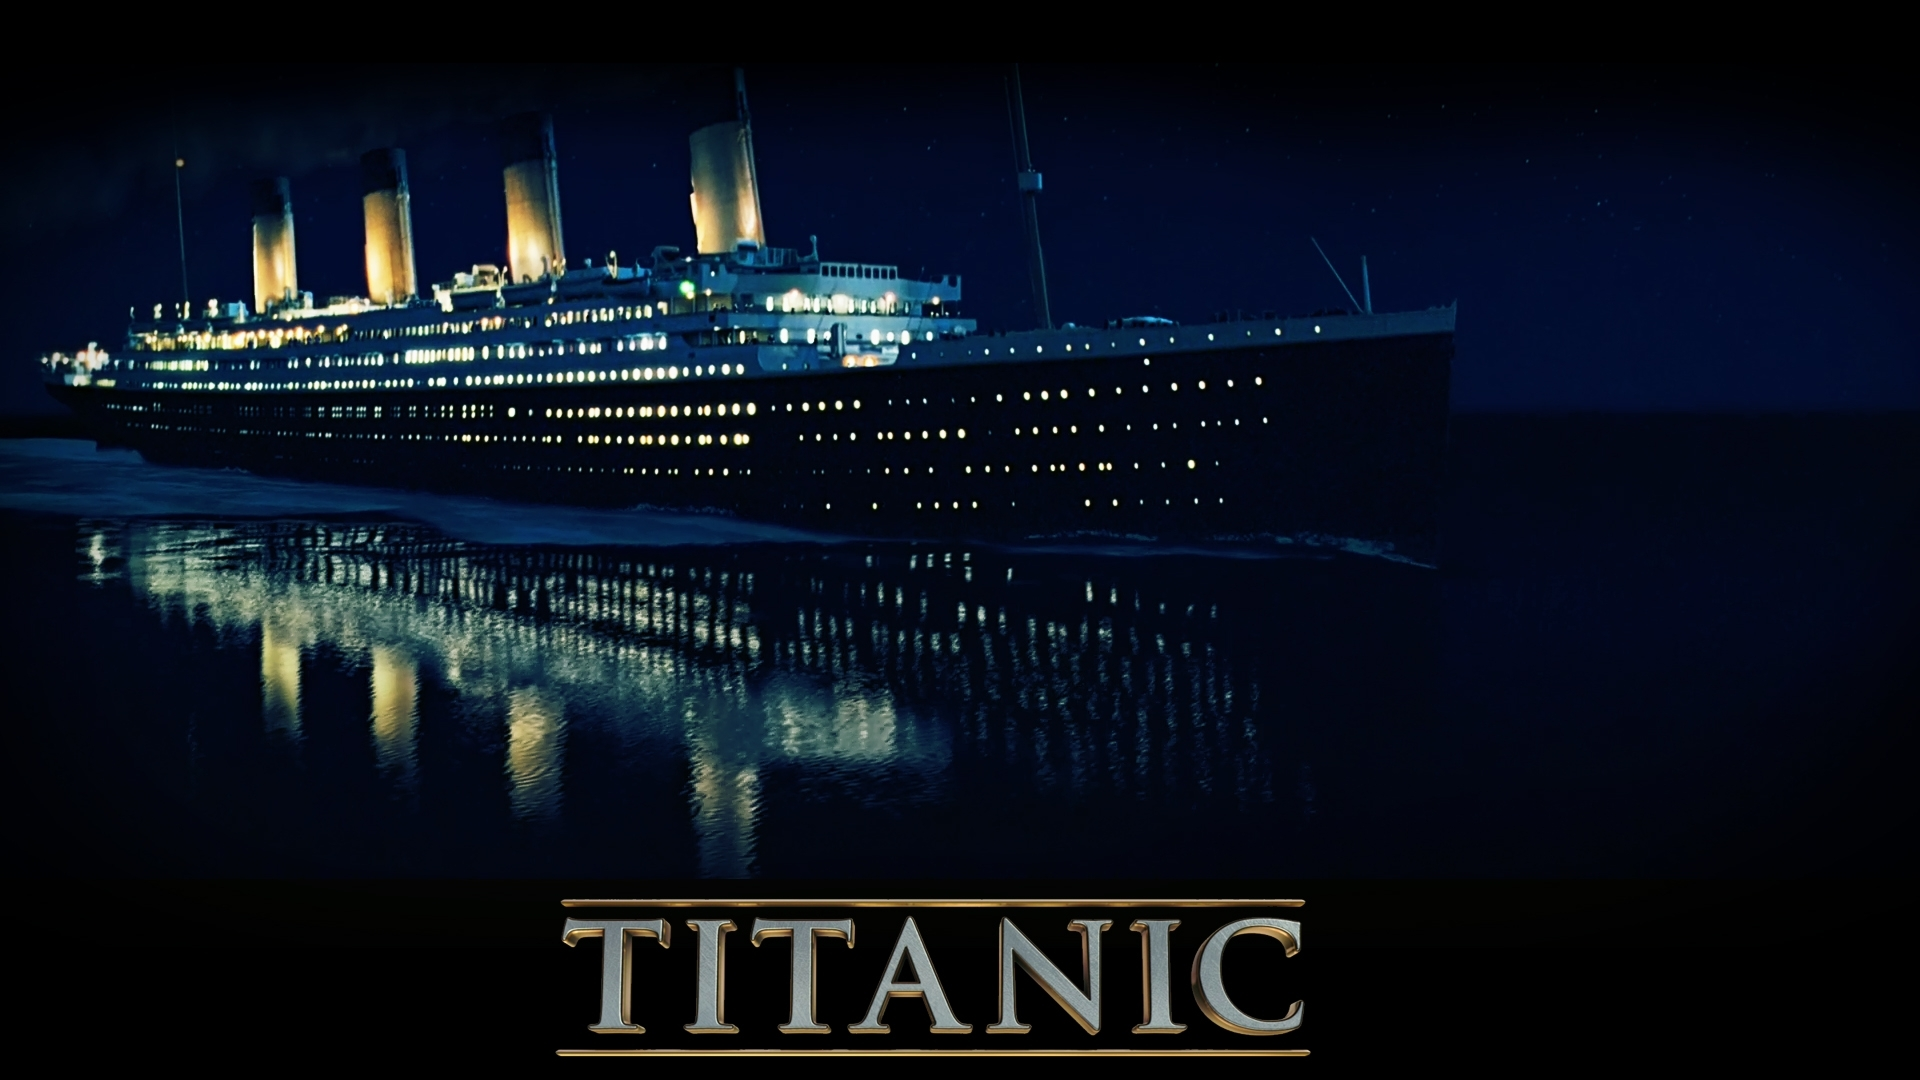 Titanic Ship 281.41 Kb